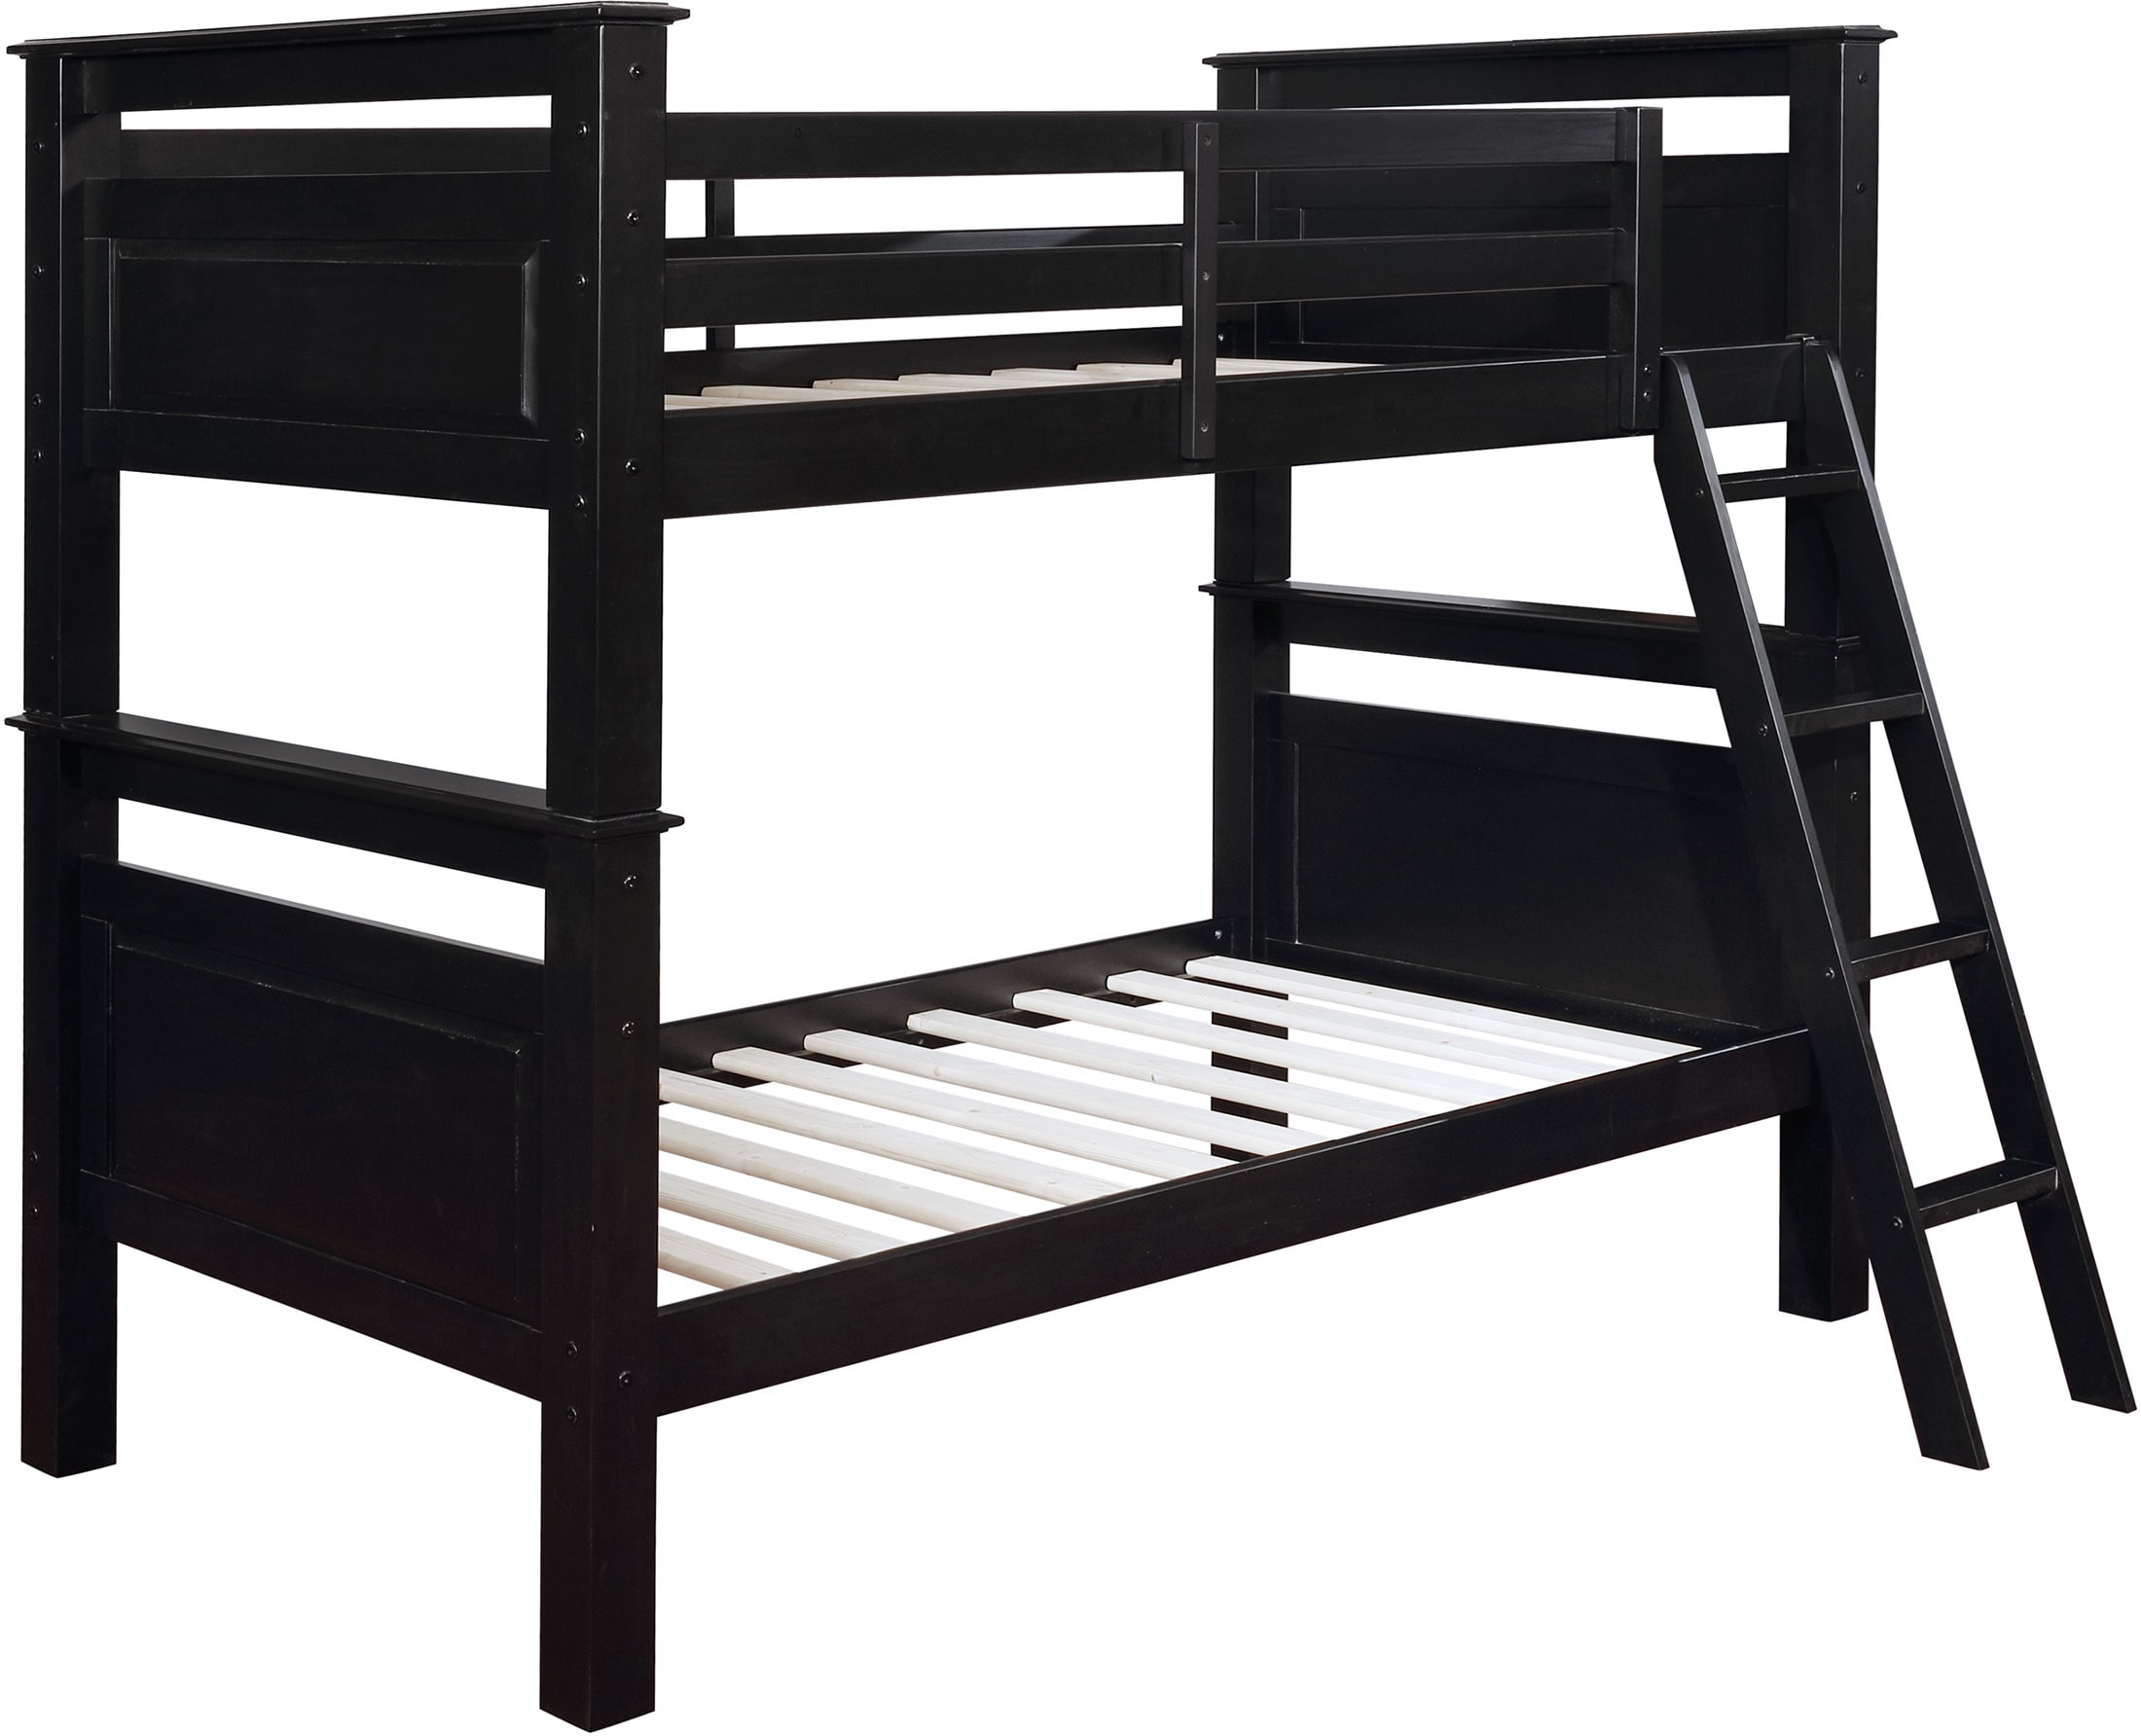 Bedroom Furniture - Walker Bunk Bed